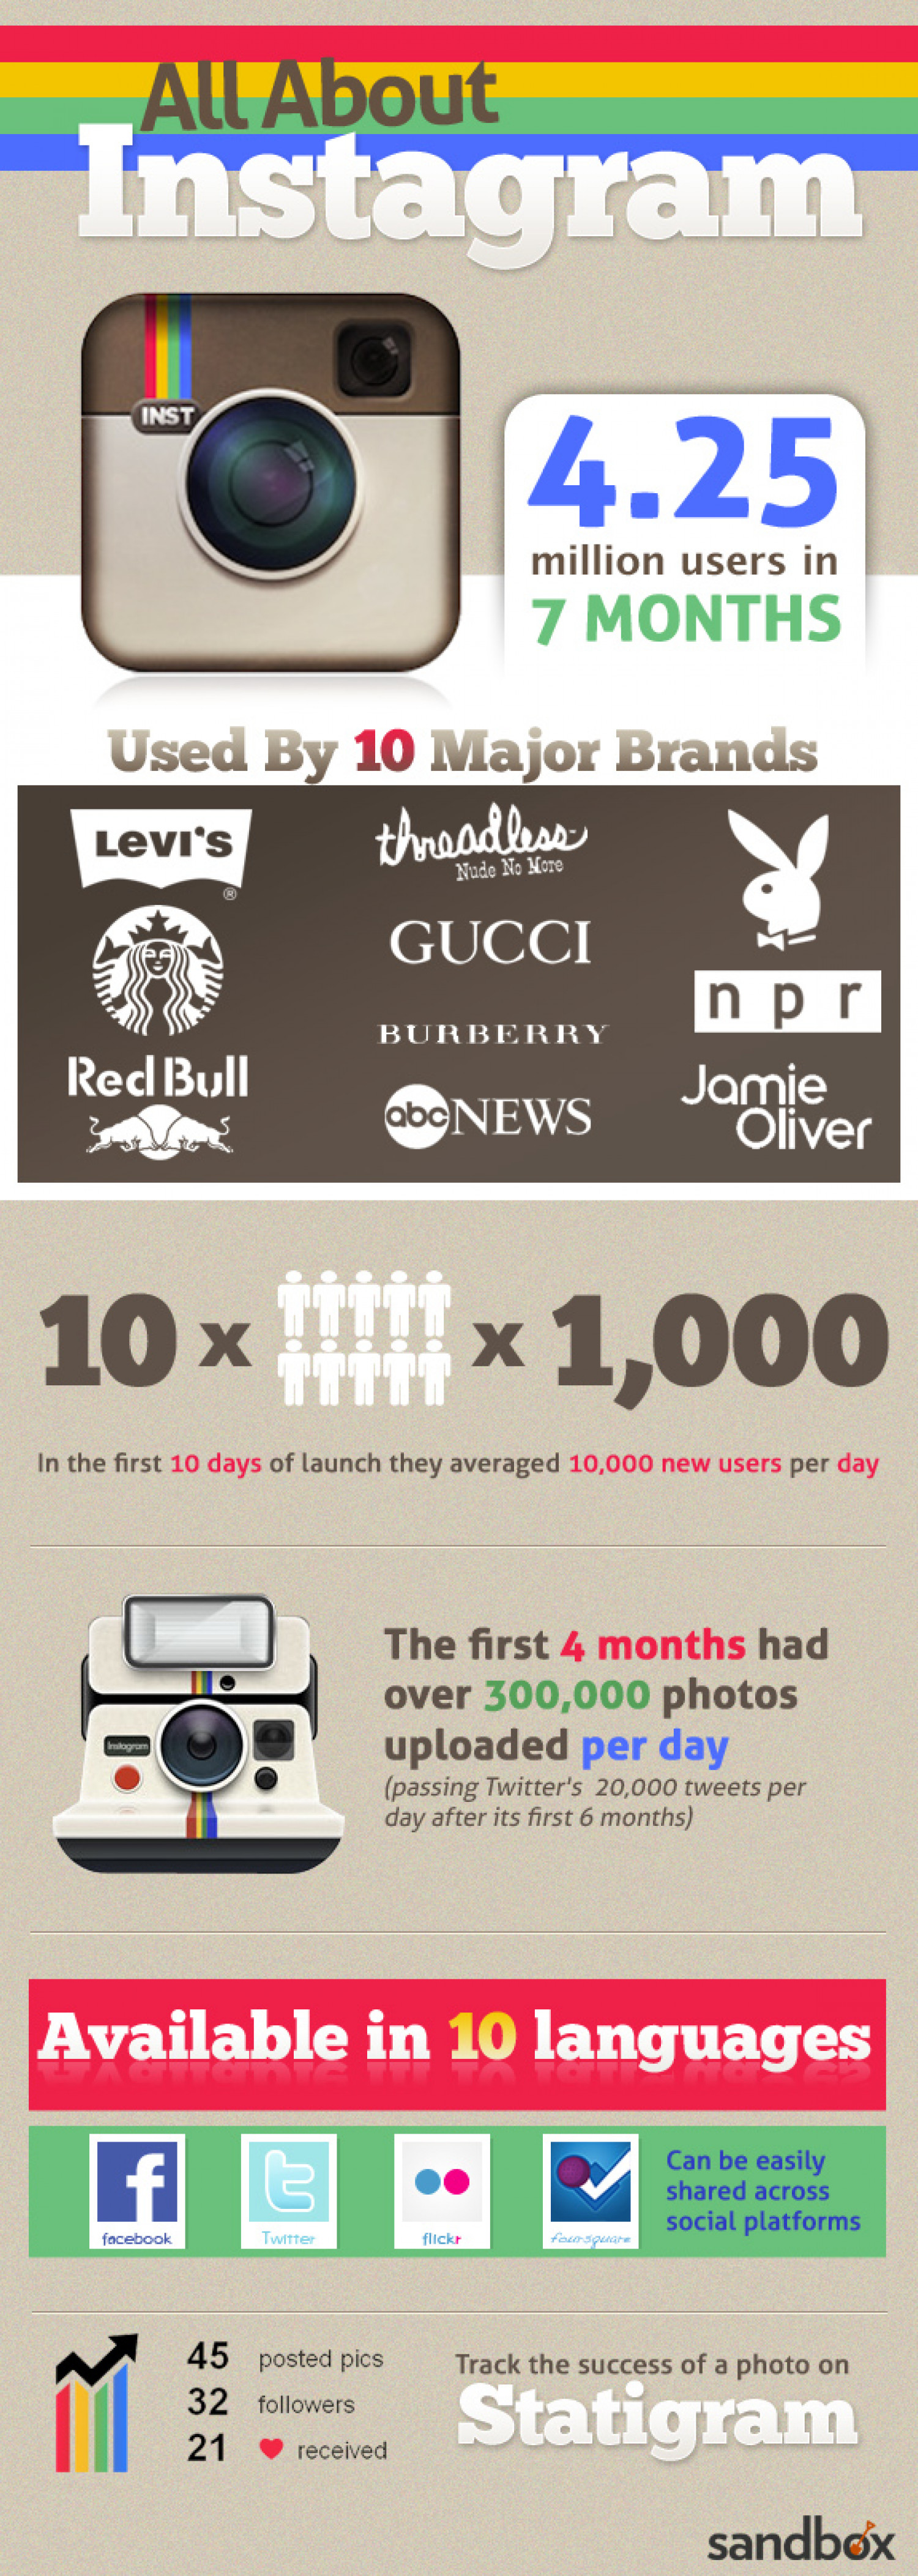 All About Instagram Infographic